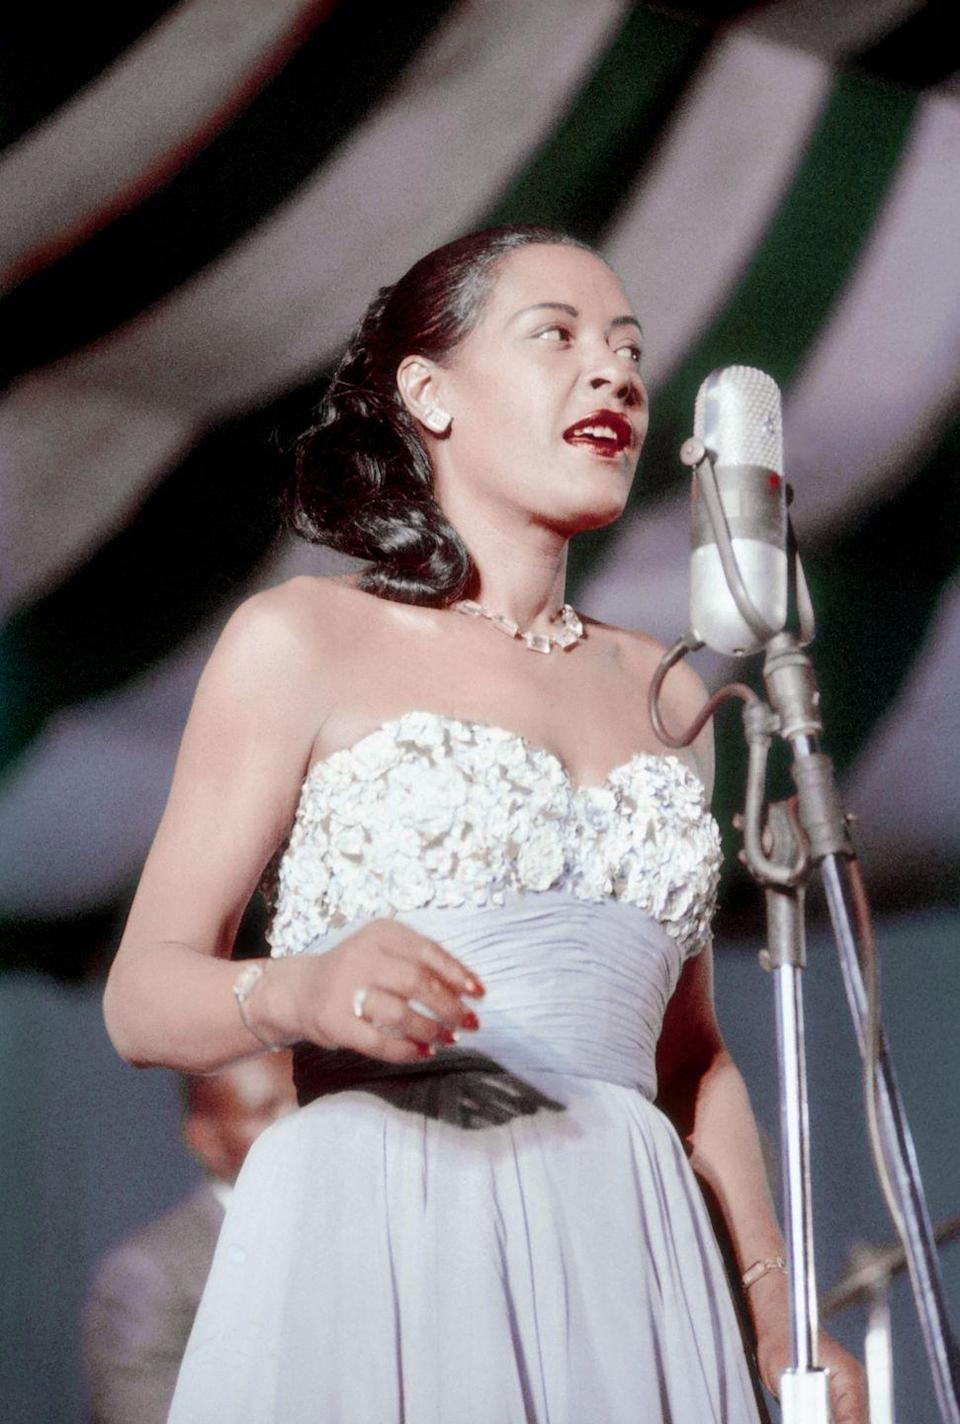 <p>Music legend Billie Holiday performing in a strapless powder-blue gown with an embellished bodice and a bright-red lip.</p>